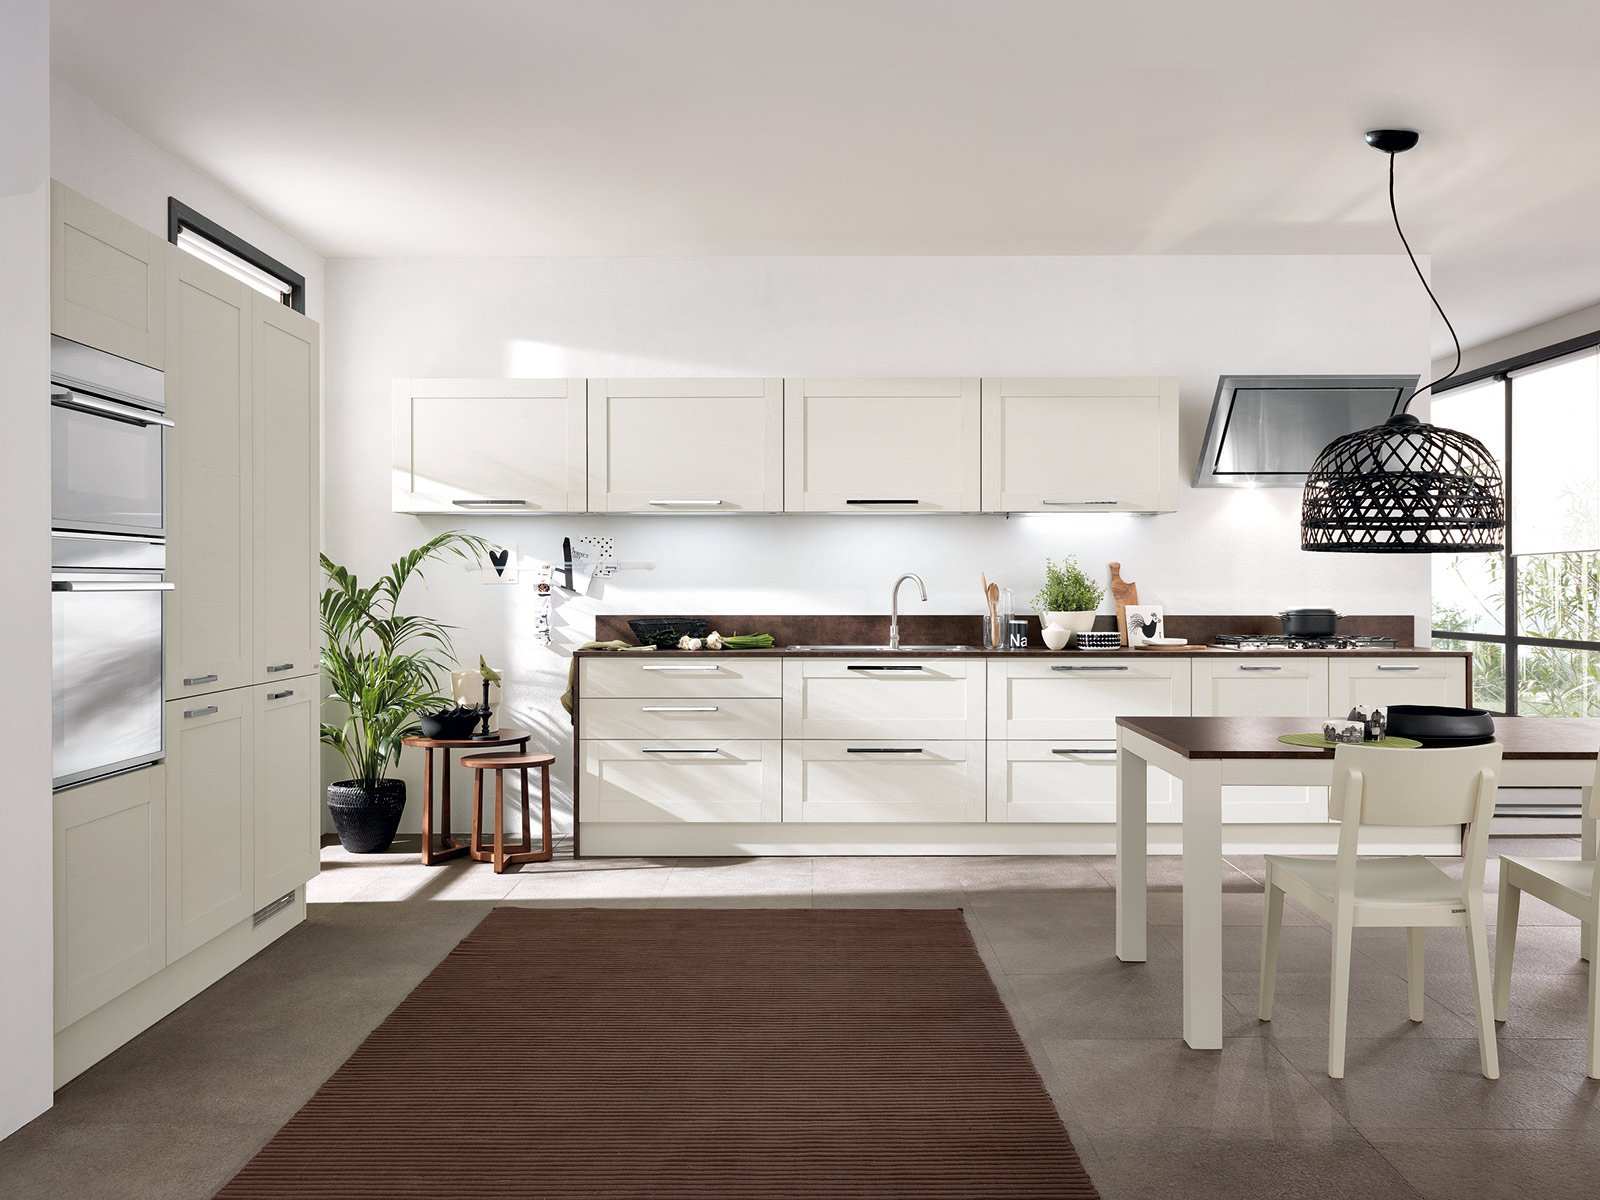 claremont project | focus kitchen by scavolini | get the look, Hause ideen